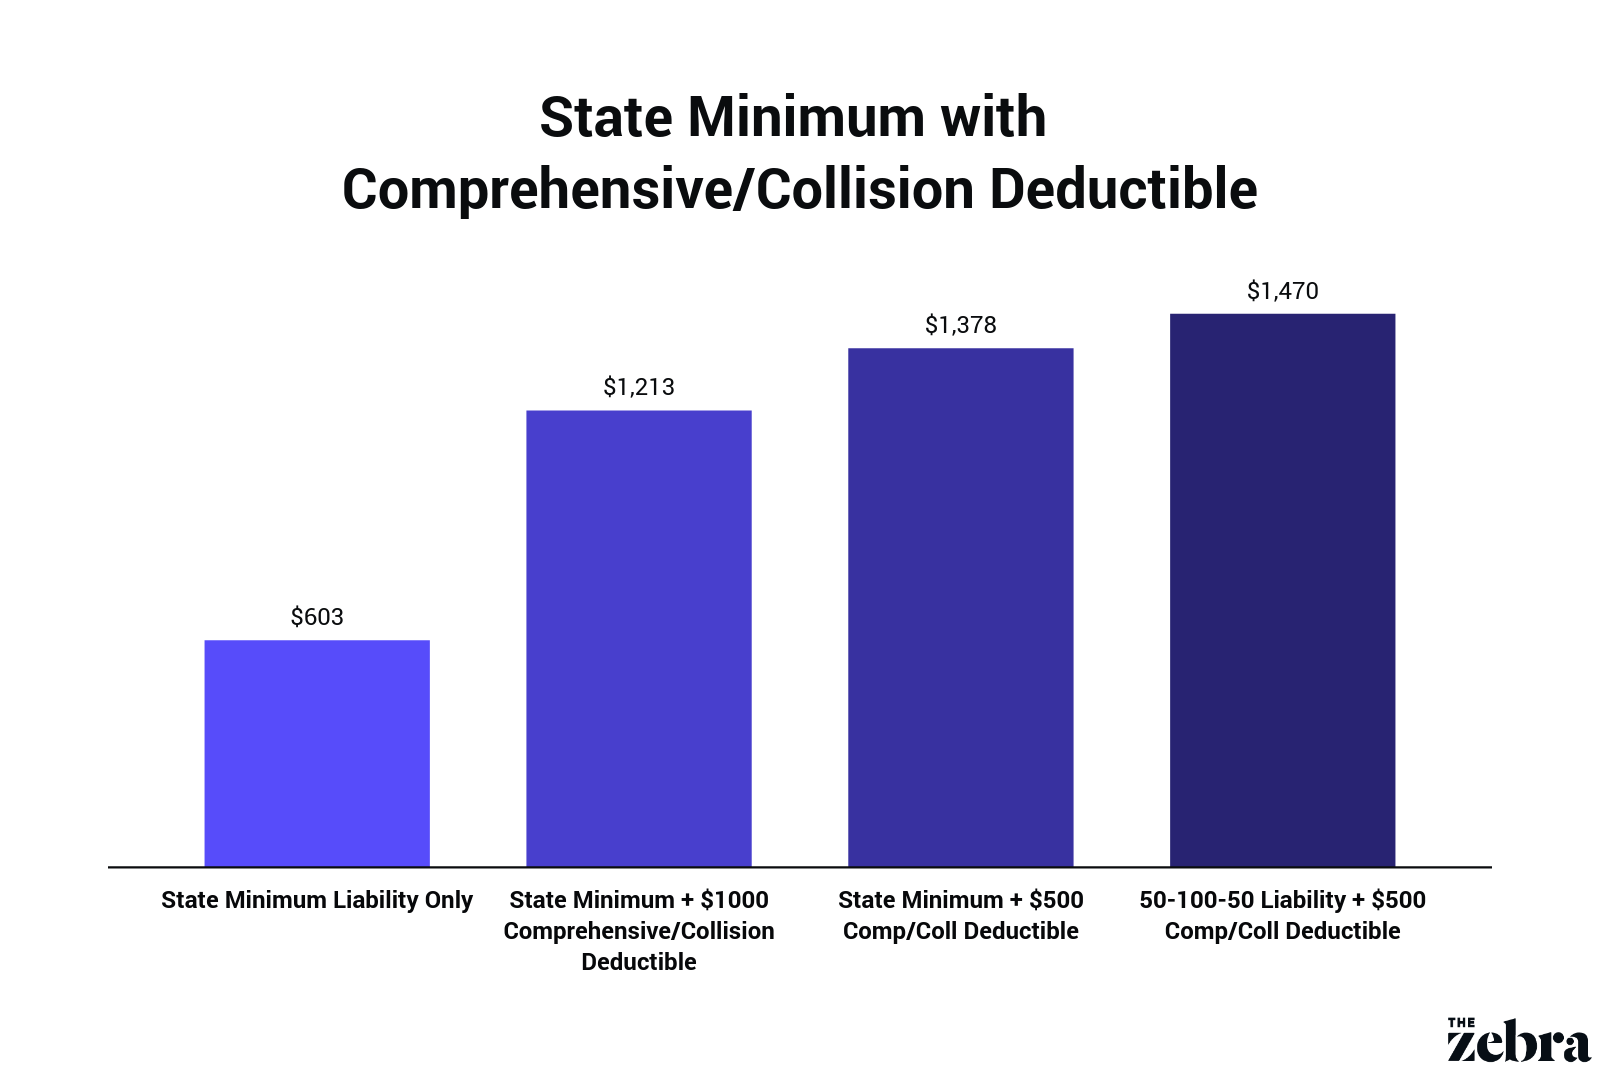 comprehensive/collision rates